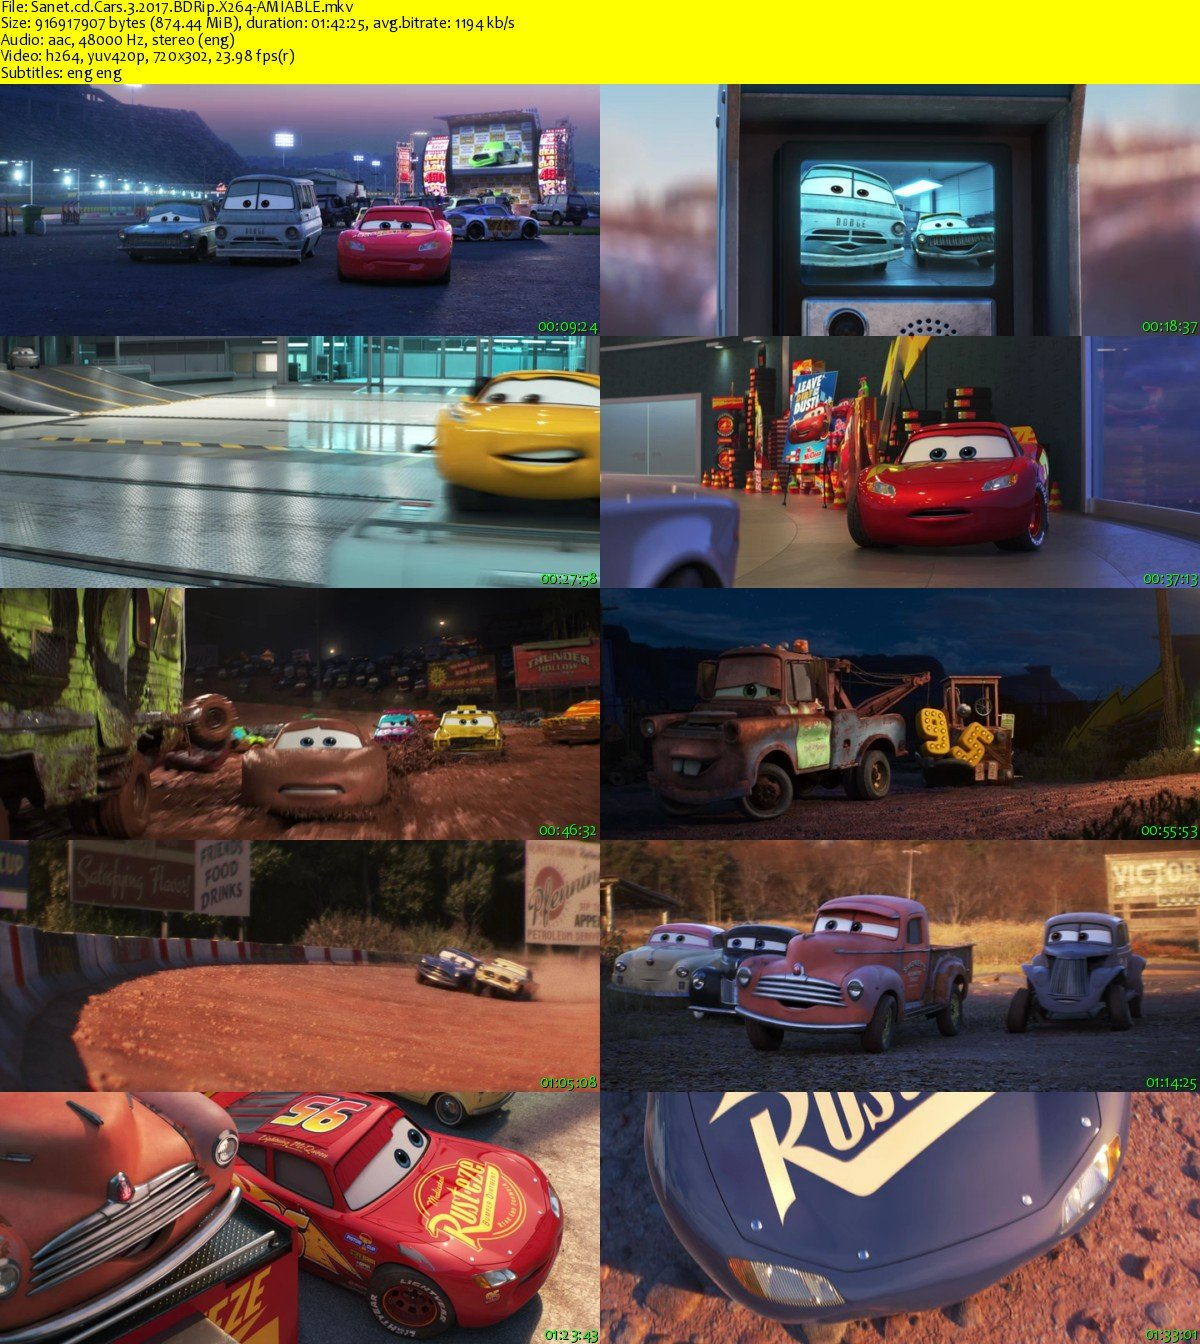 watch cars 3 2017 full movie download online stream hd